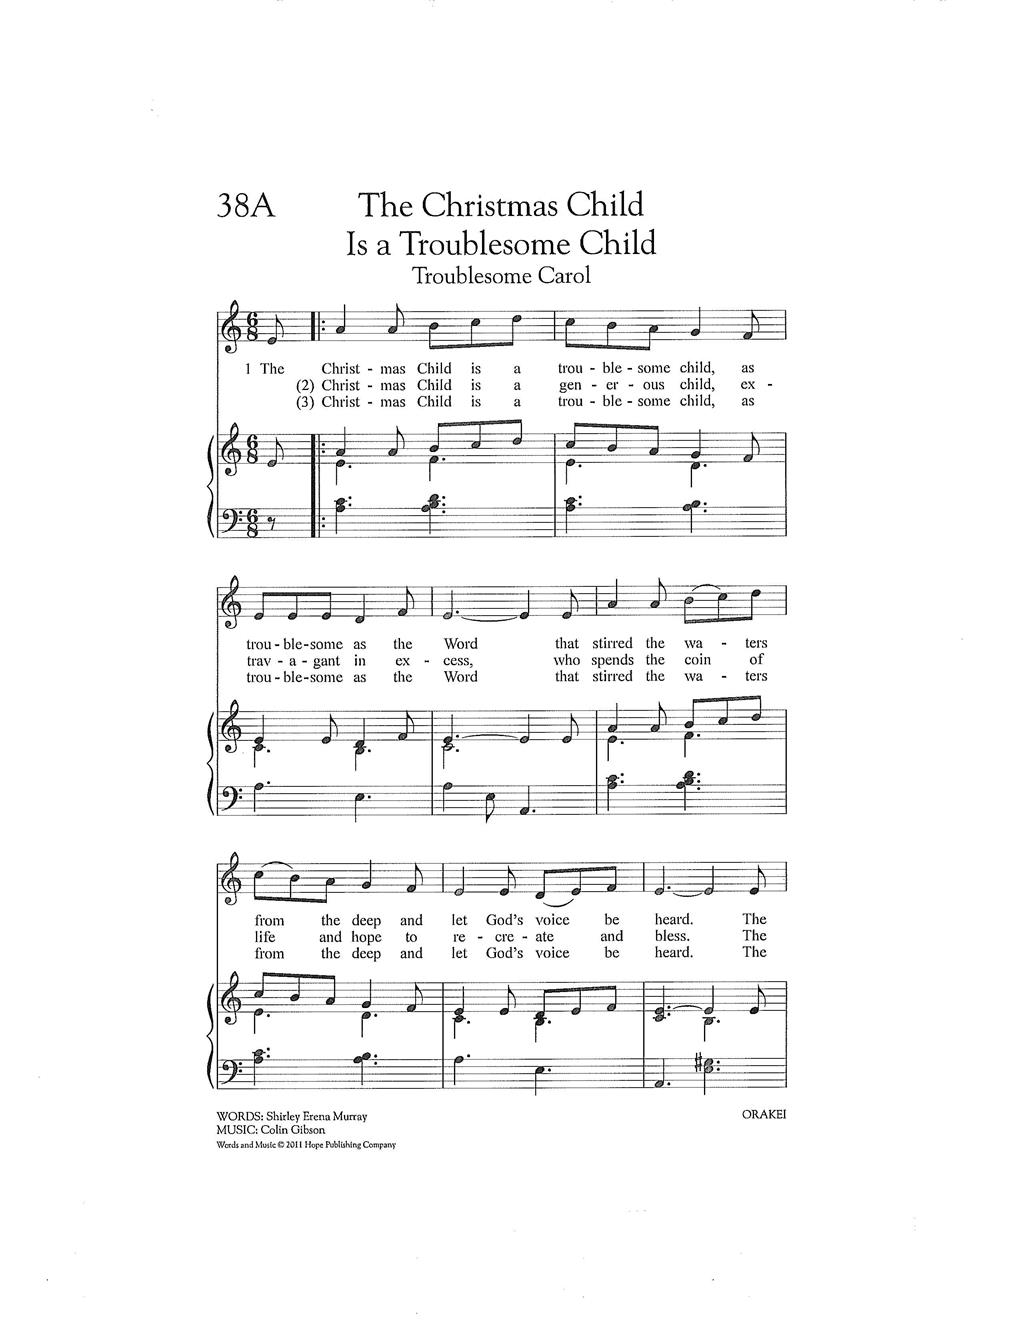 The Christmas Child Is a Troublesome Child (Troublesome Carol) Cover Image